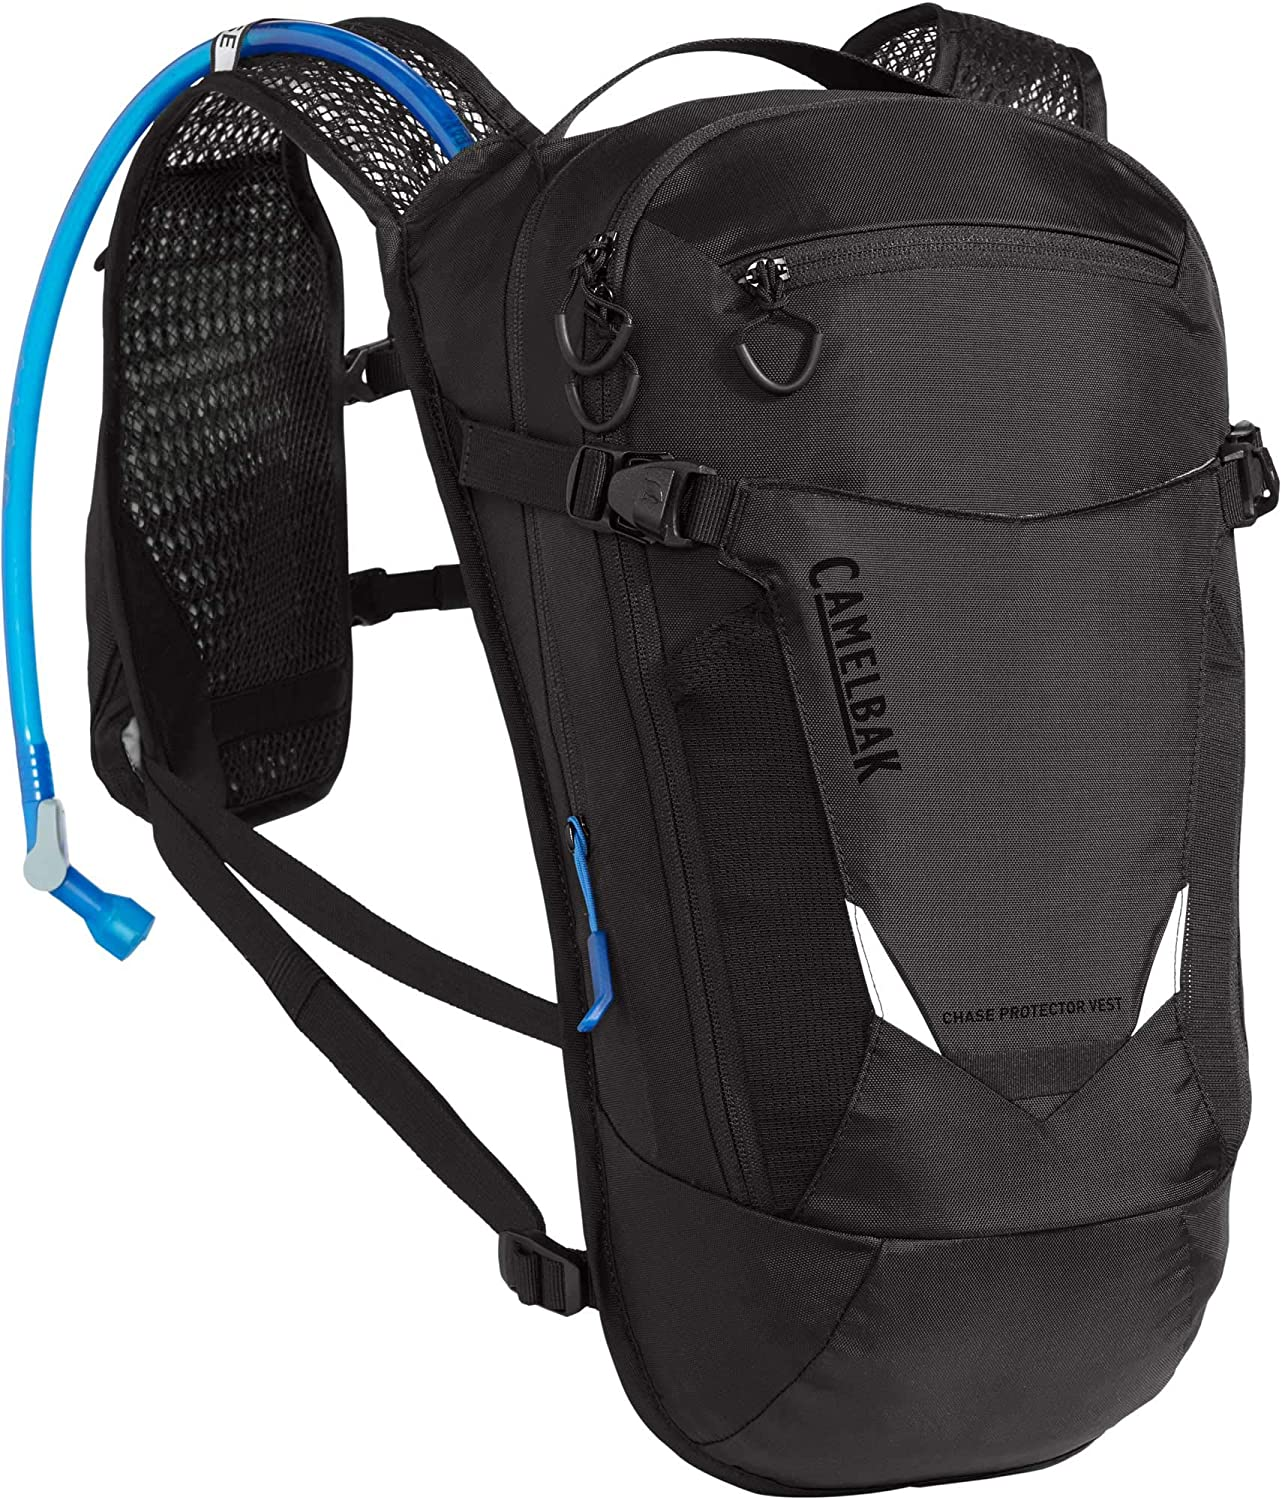 Chase Protector Bike Hydration Vest - Center Back Impact Protection - 70 oz